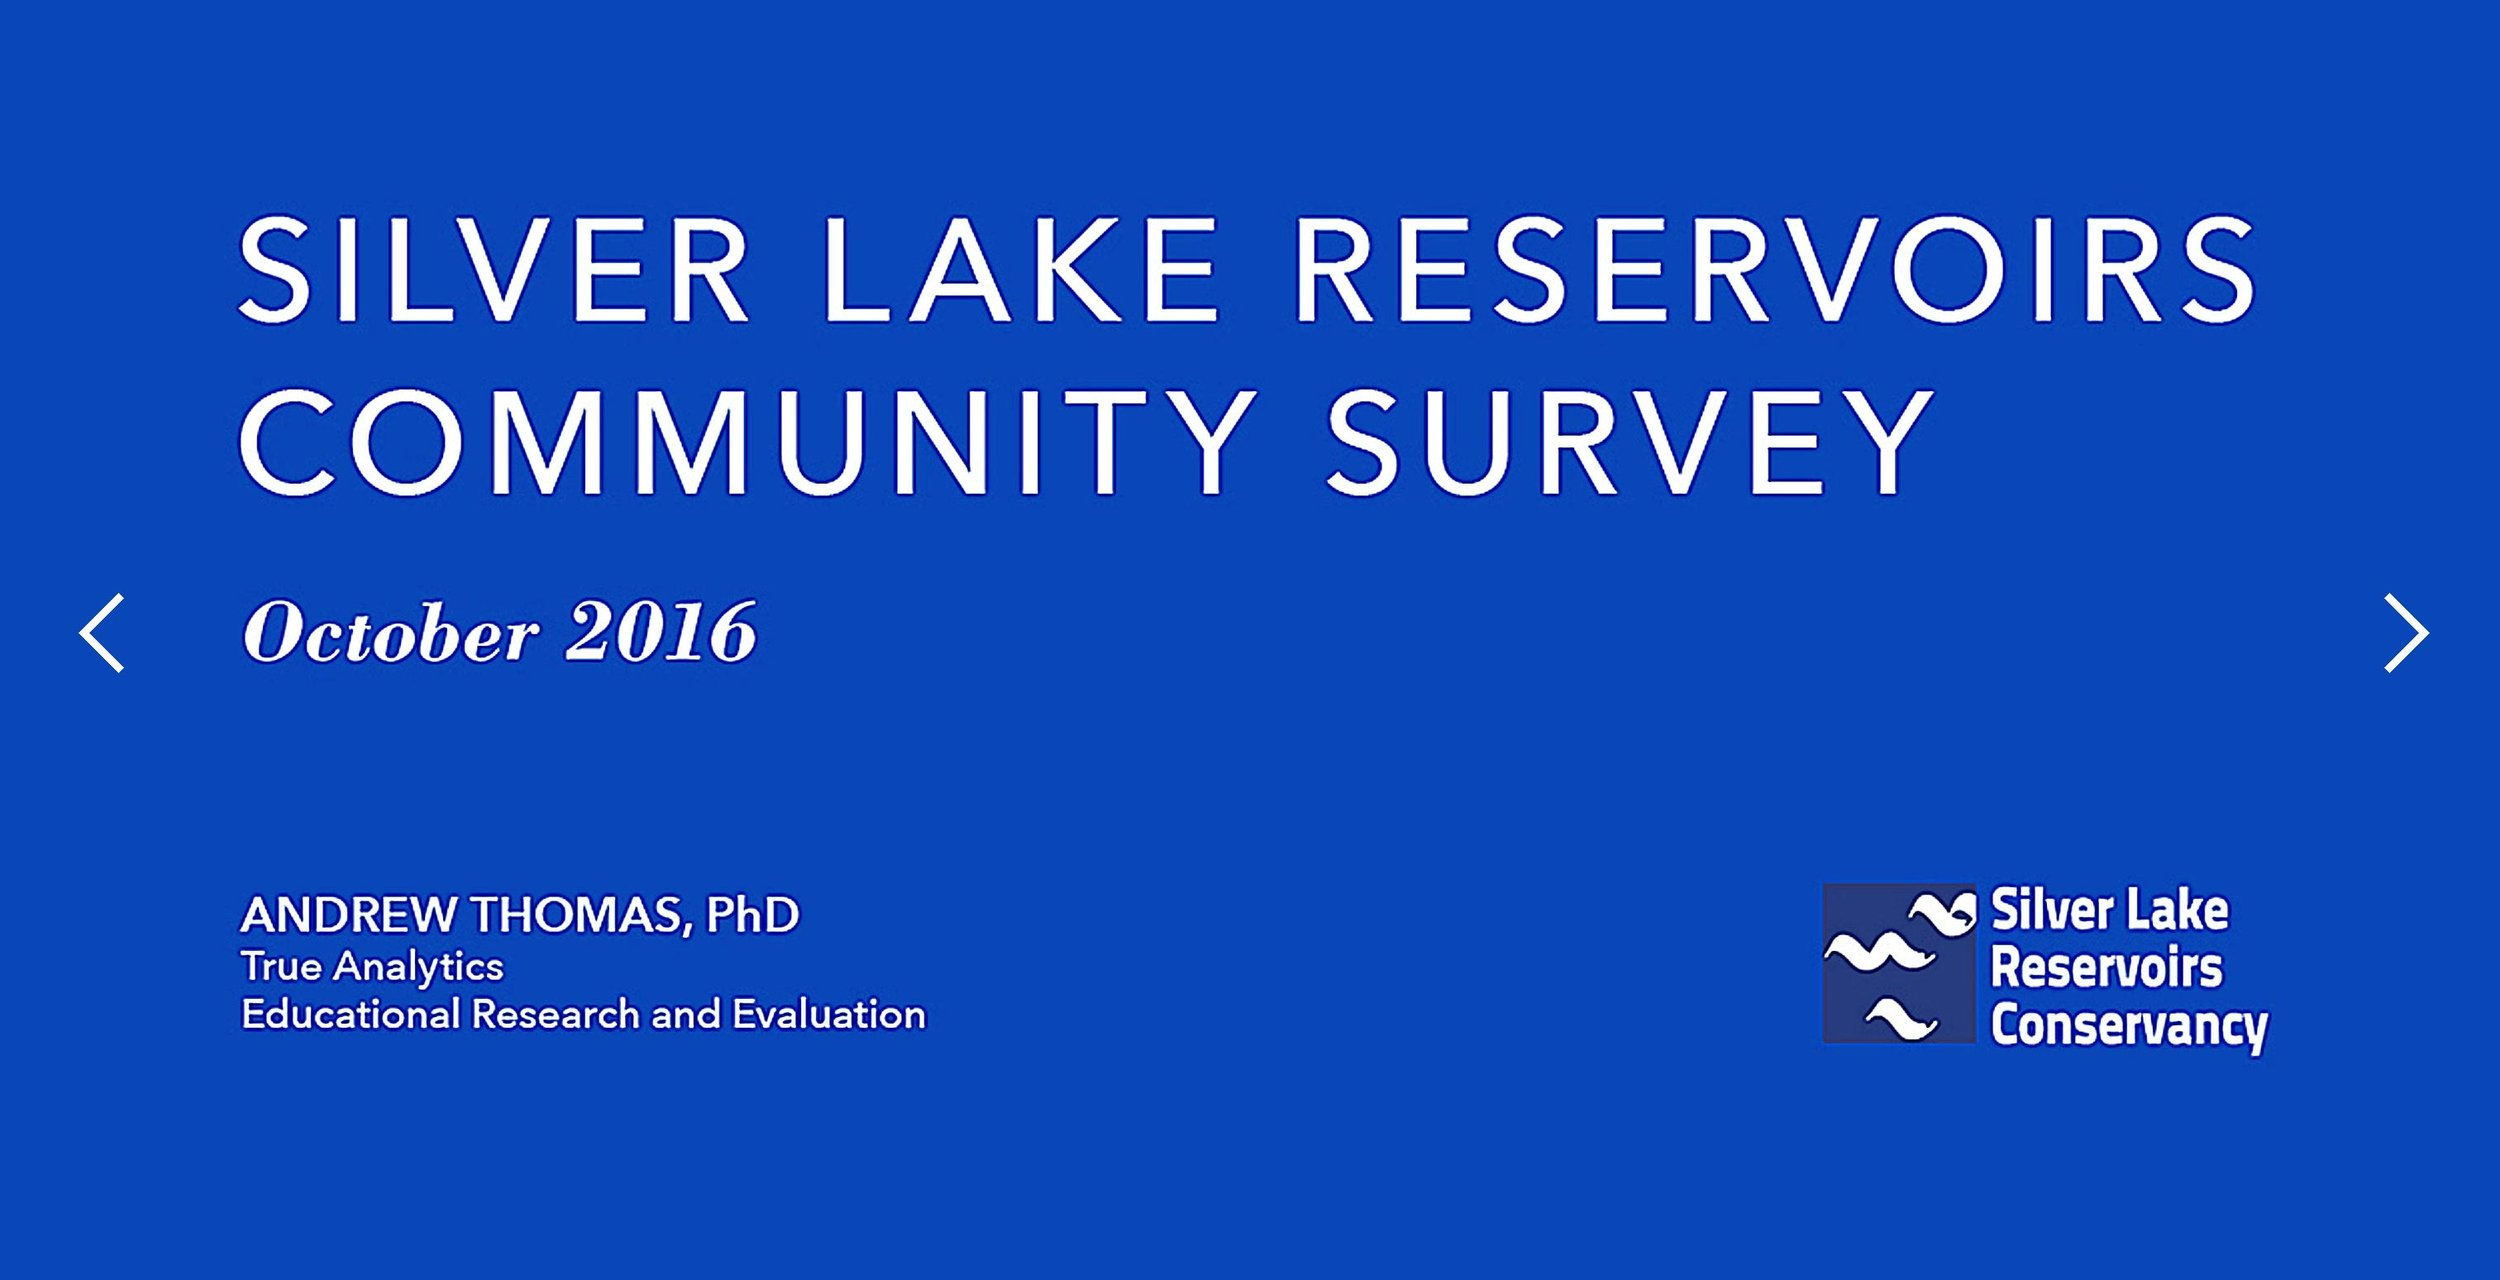 Silver Lake Reservoirs Conservancy